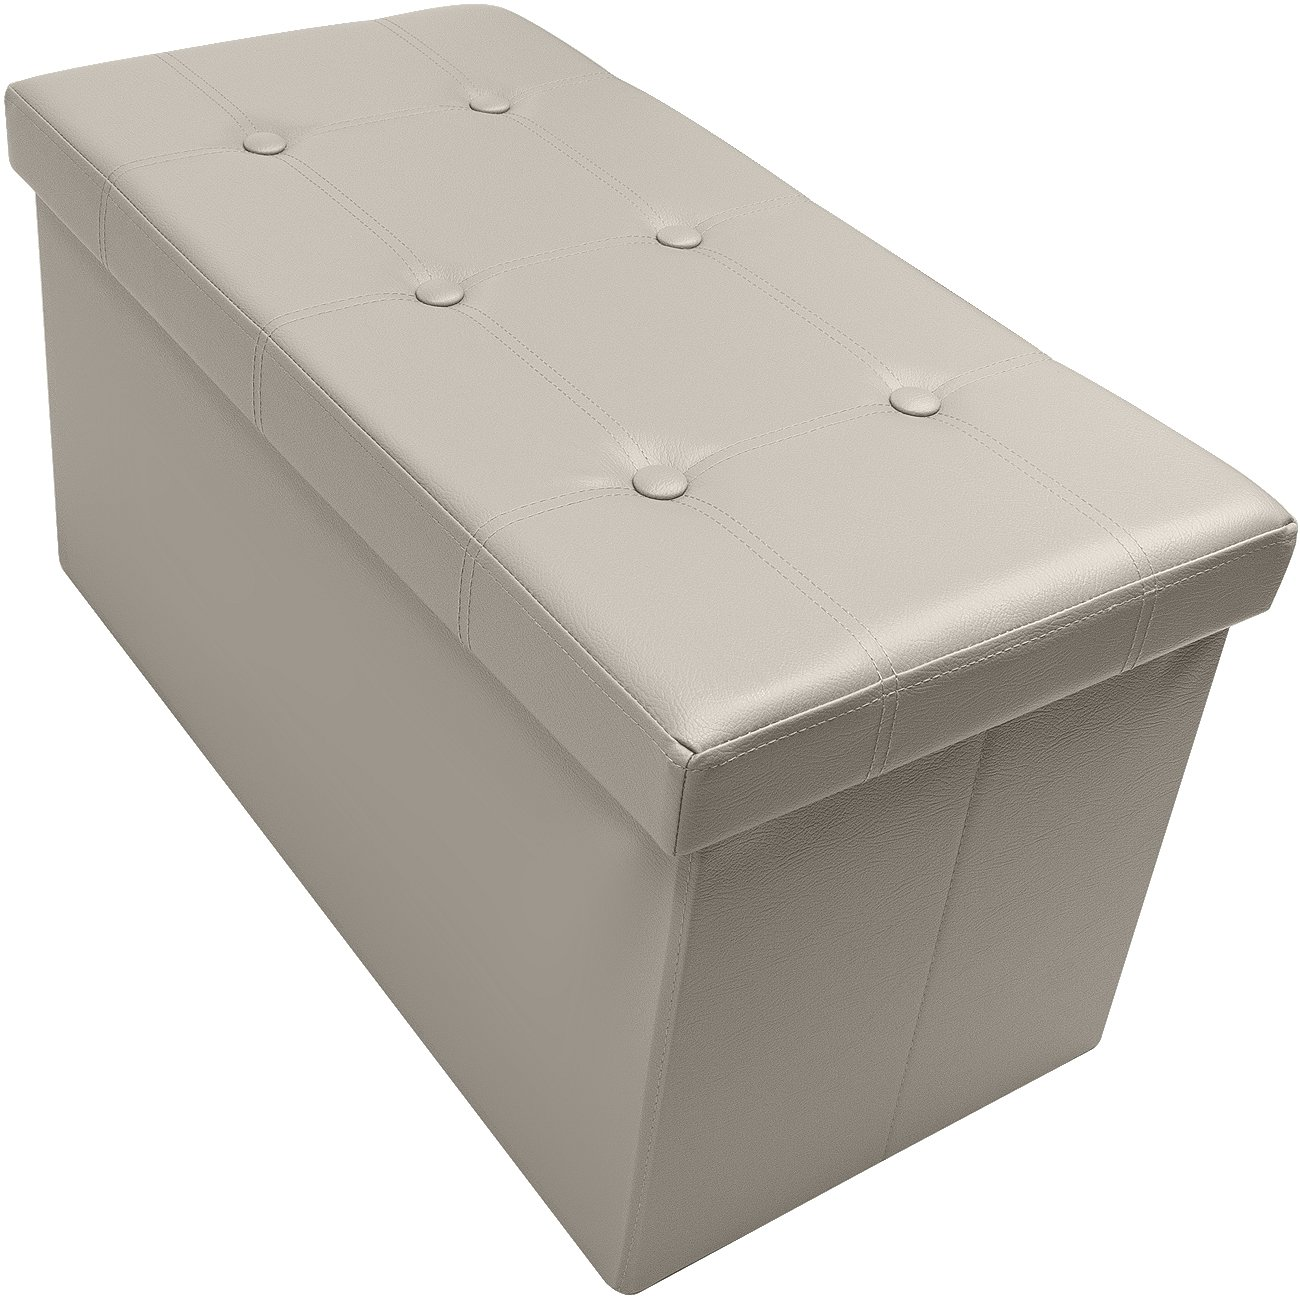 Sorbus Storage Bench Chest – Collapsible/Folding Bench Ottoman with Cover – Perfect Hope Chest, Pouffe Ottoman, Coffee Table, Seat, Foot Rest, and more – Contemporary Faux leather (Medium, Beige)